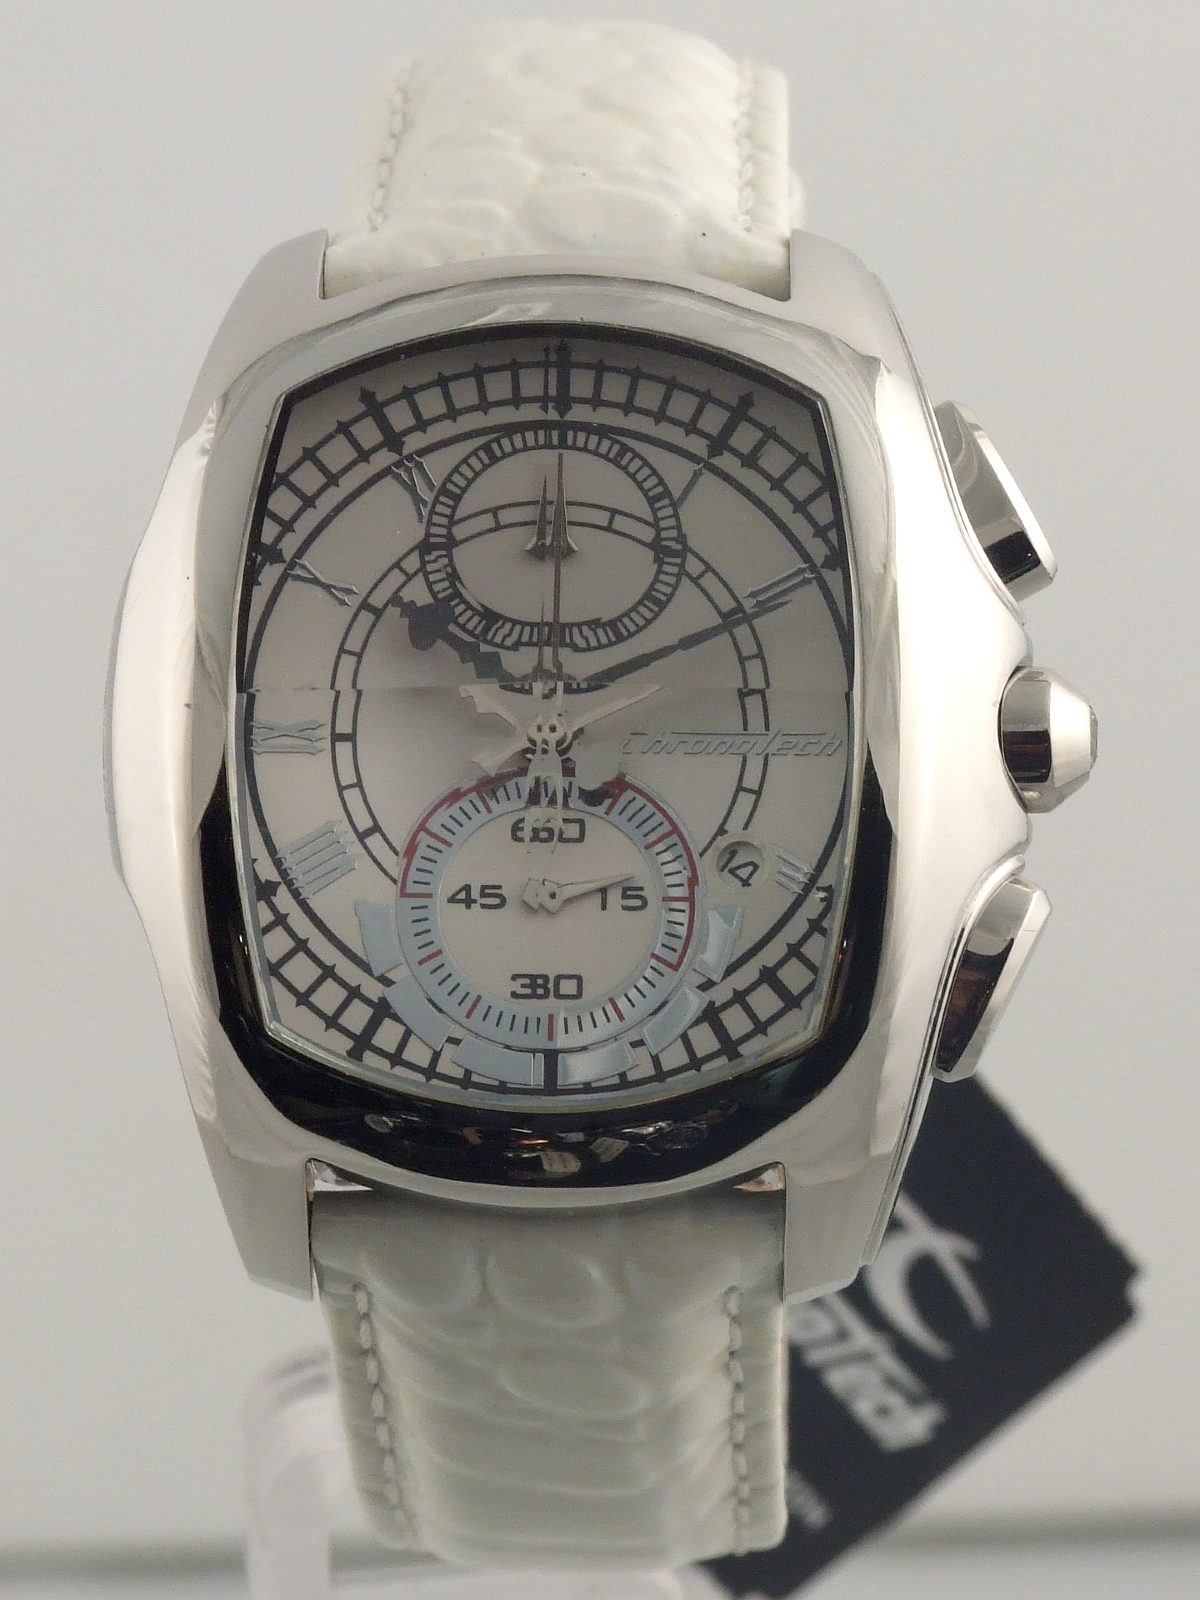 CHRONOTECH PRISMA BIG BEN CHRONO CT7895M/99 MEN'S WATCH